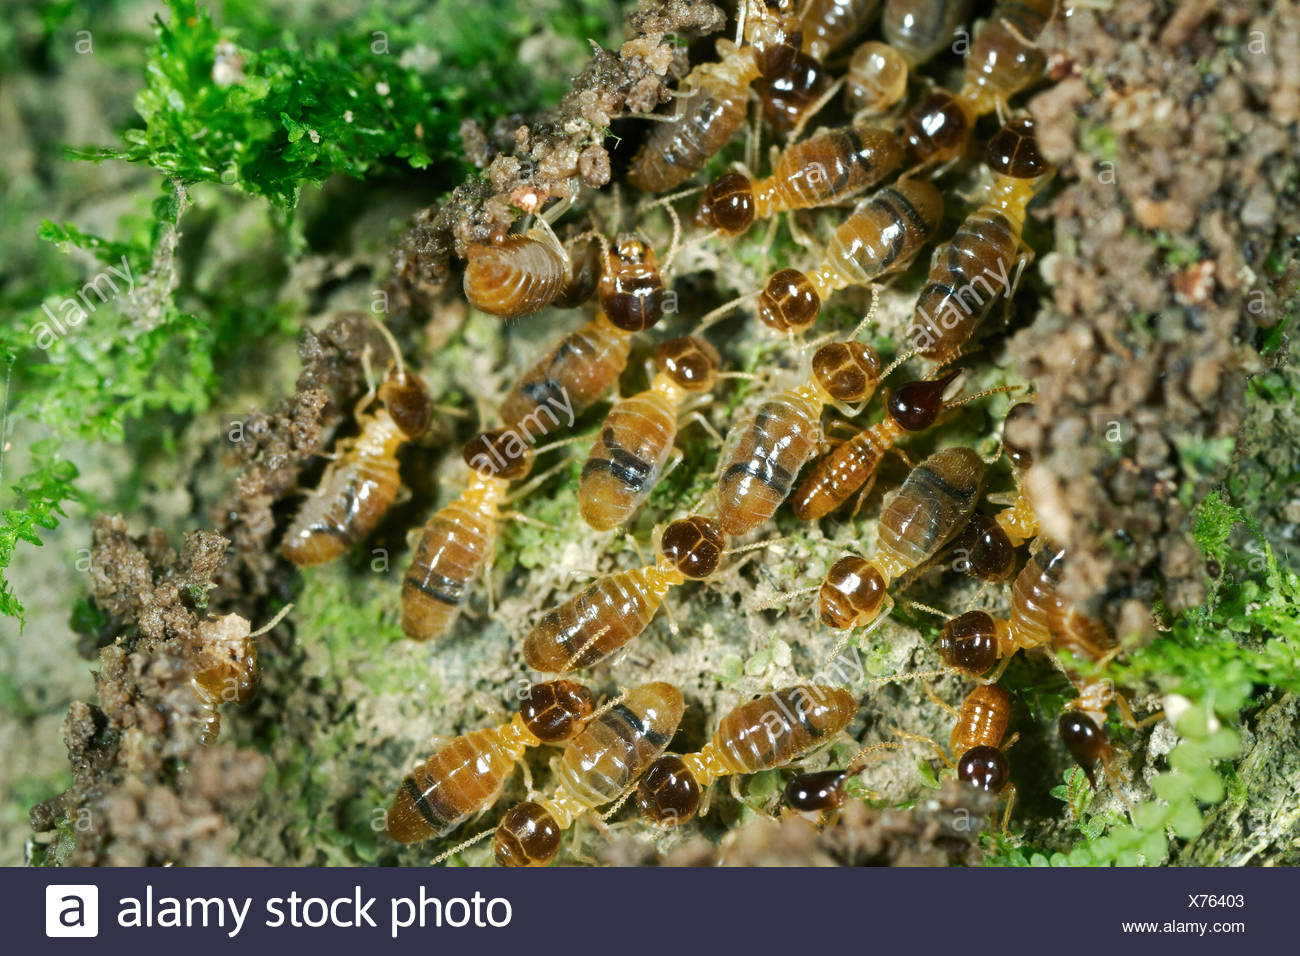 Nasutitermes termites with nose-like appendages on the head for spraying a sticky liquid for defense, termites (Termitidae) - Stock Image